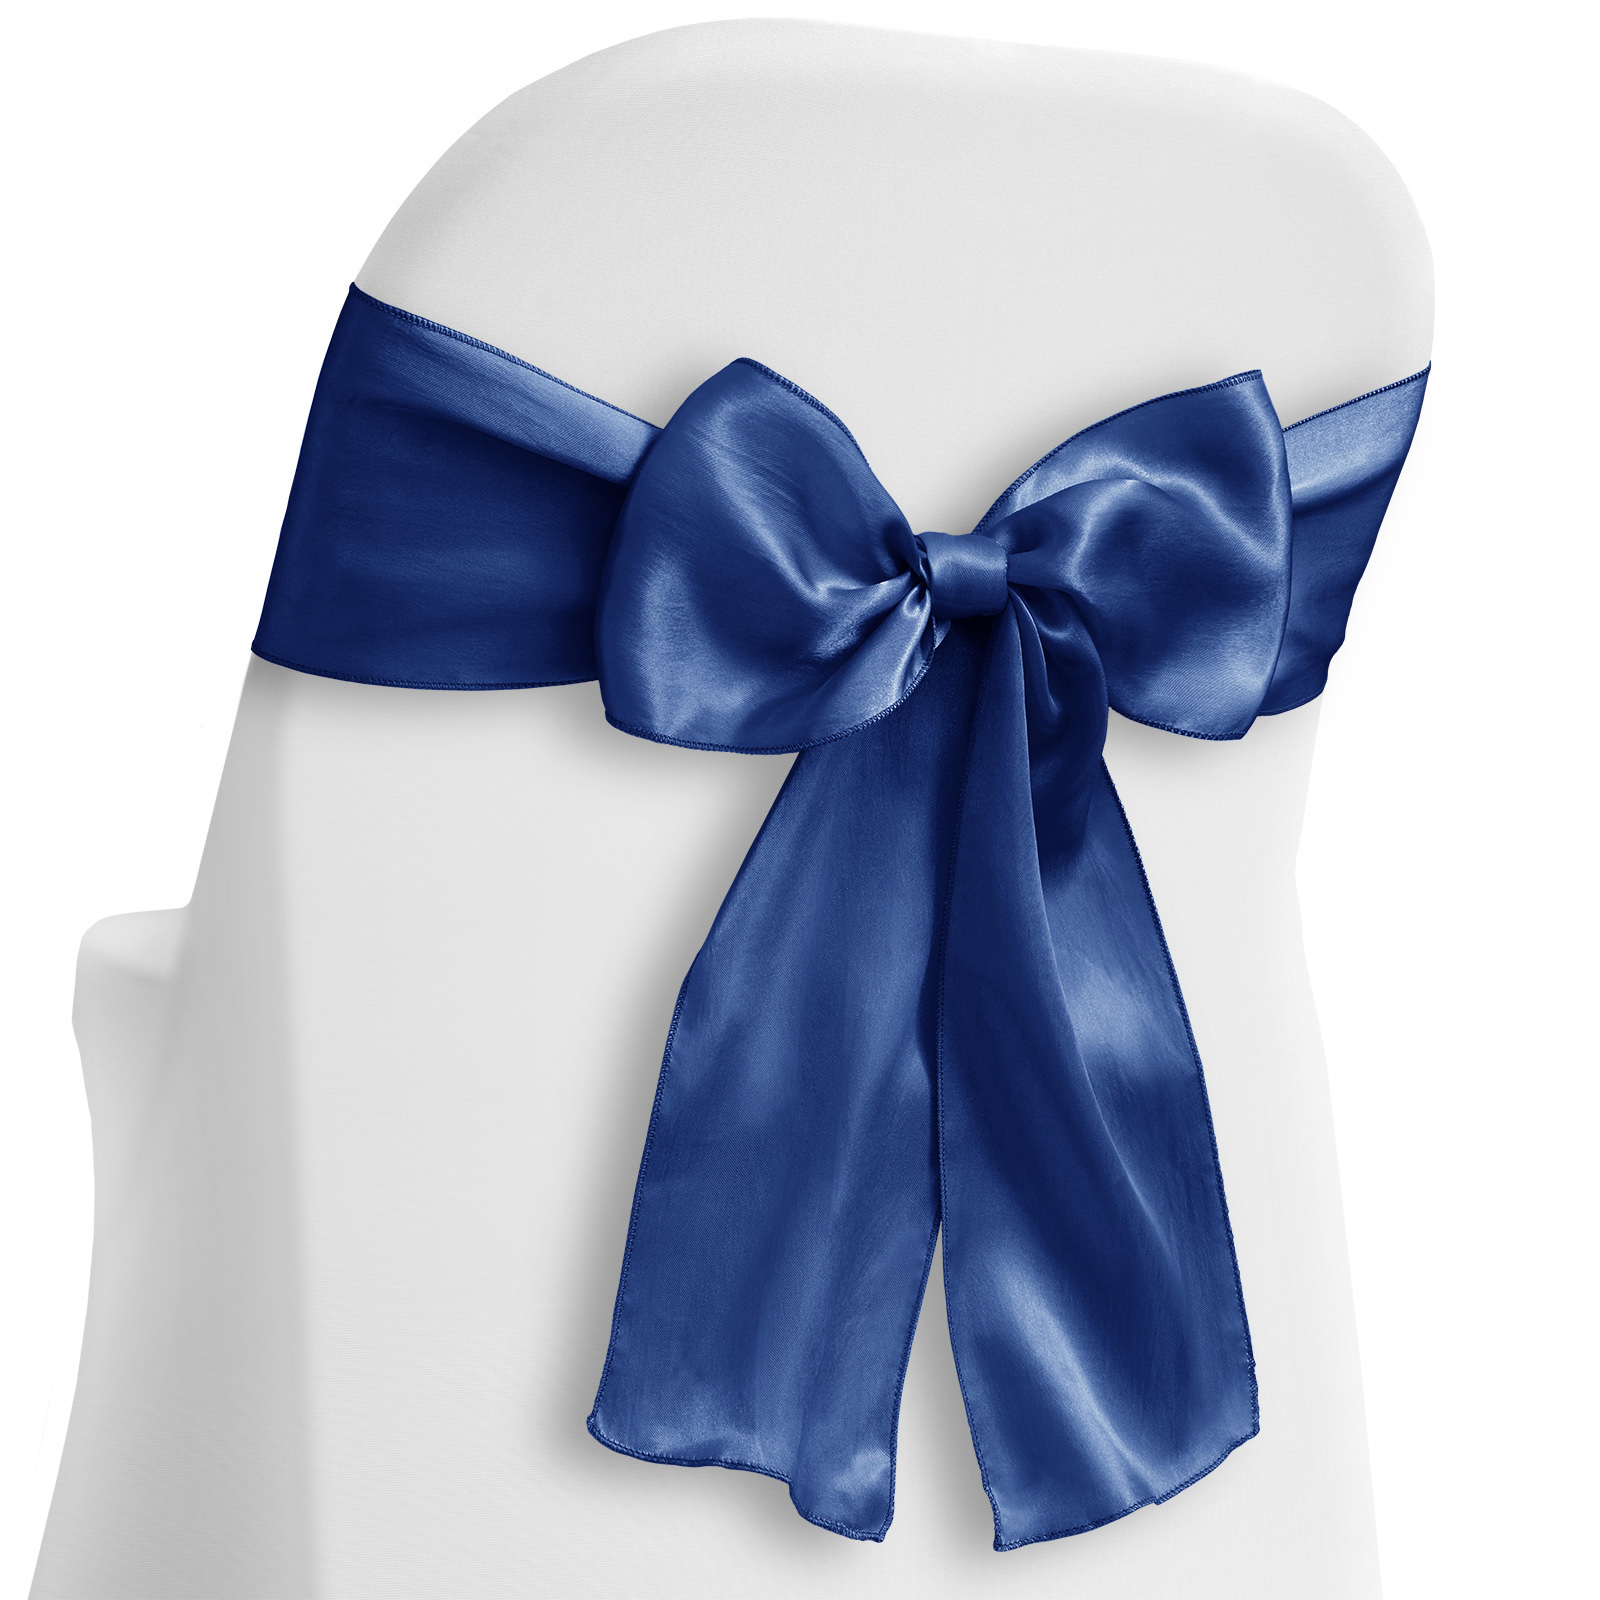 Surprising Lanns Linens 10 Elegant Satin Wedding Party Chair Cover Sashes Bows Ribbon Tie Back Sash Royal Blue Lanns Linens Caraccident5 Cool Chair Designs And Ideas Caraccident5Info